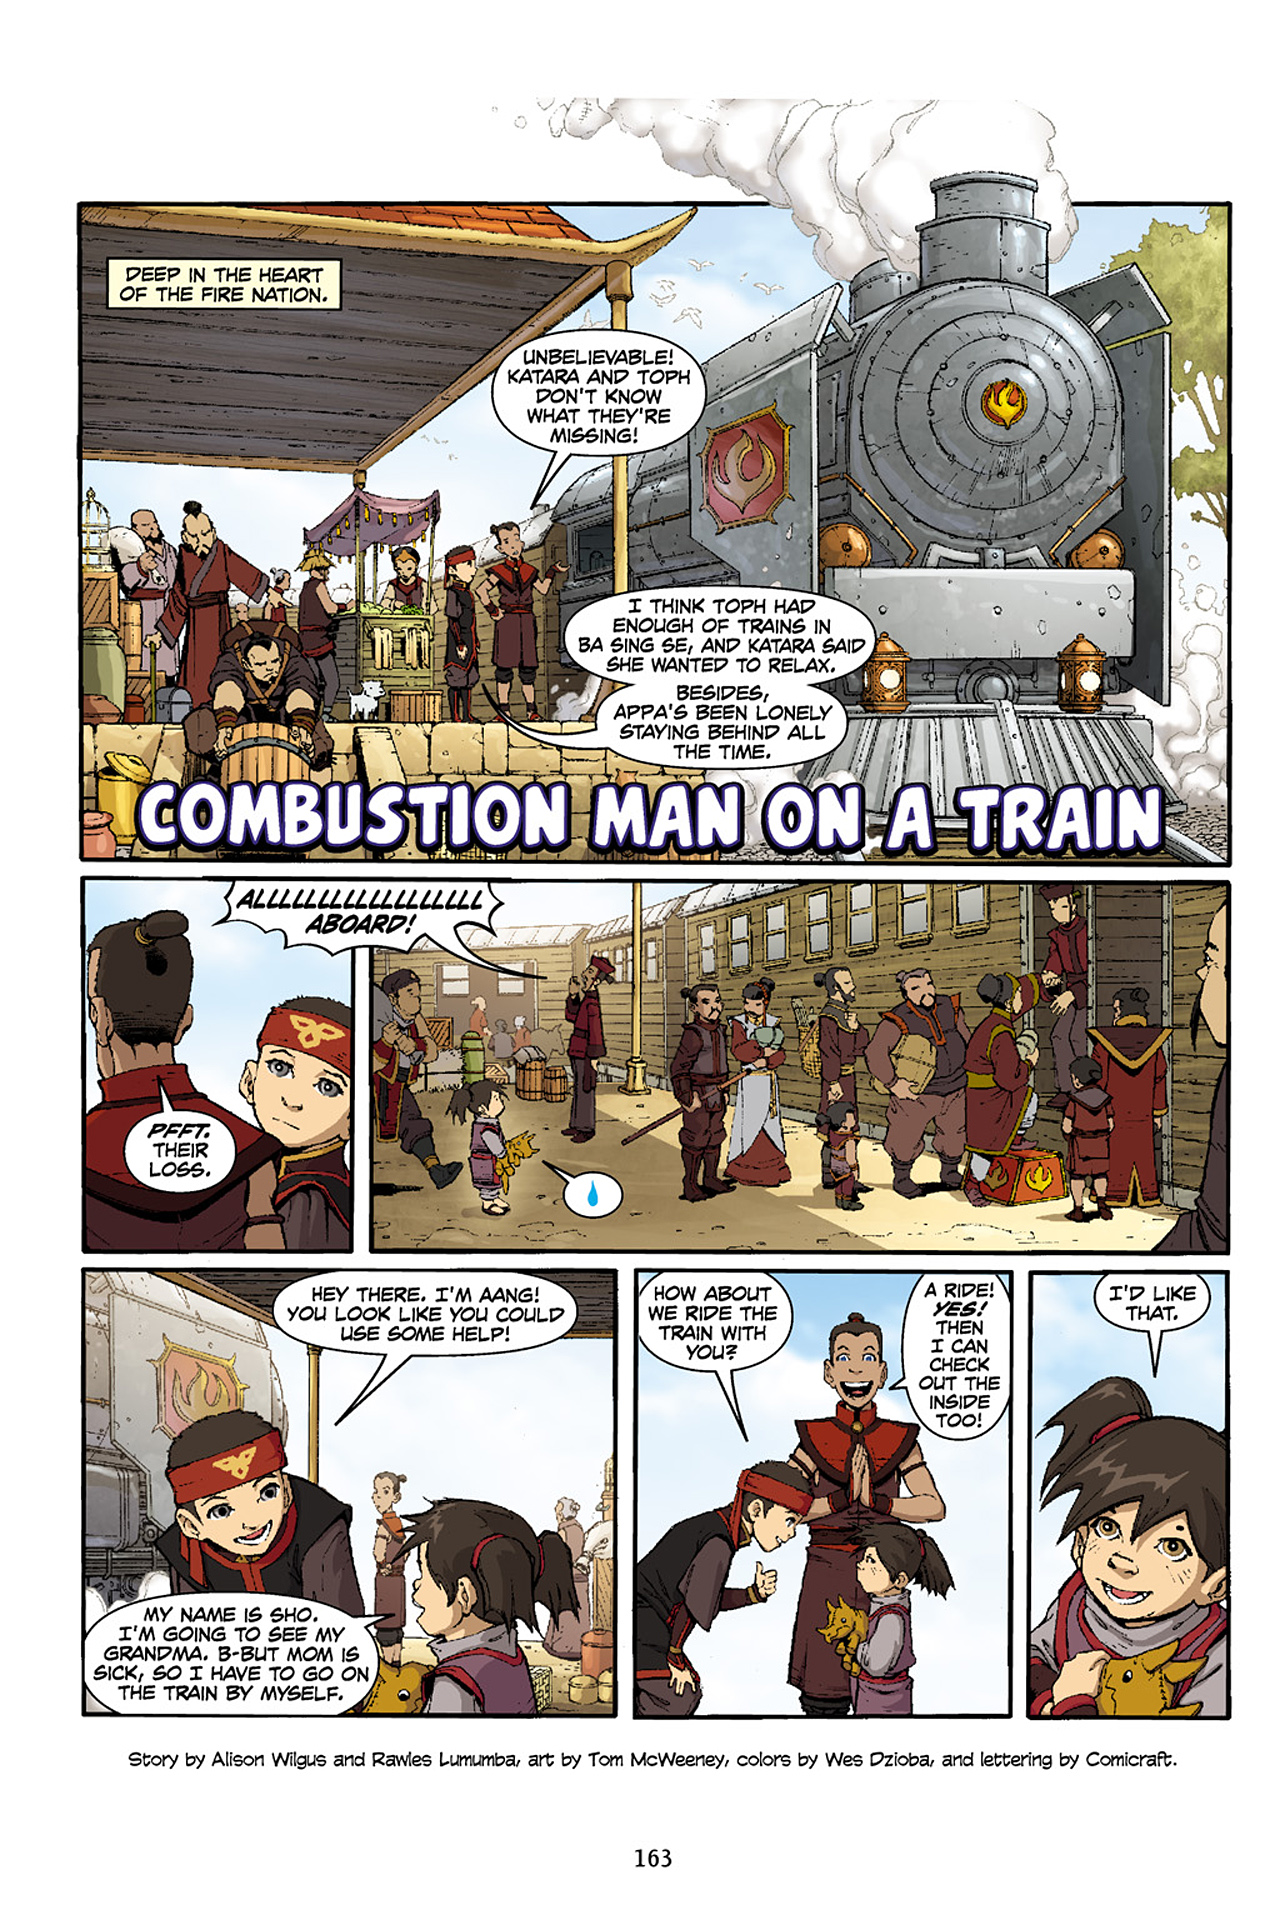 Nickelodeon Avatar: The Last Airbender - The Lost Adventures chap full pic 164